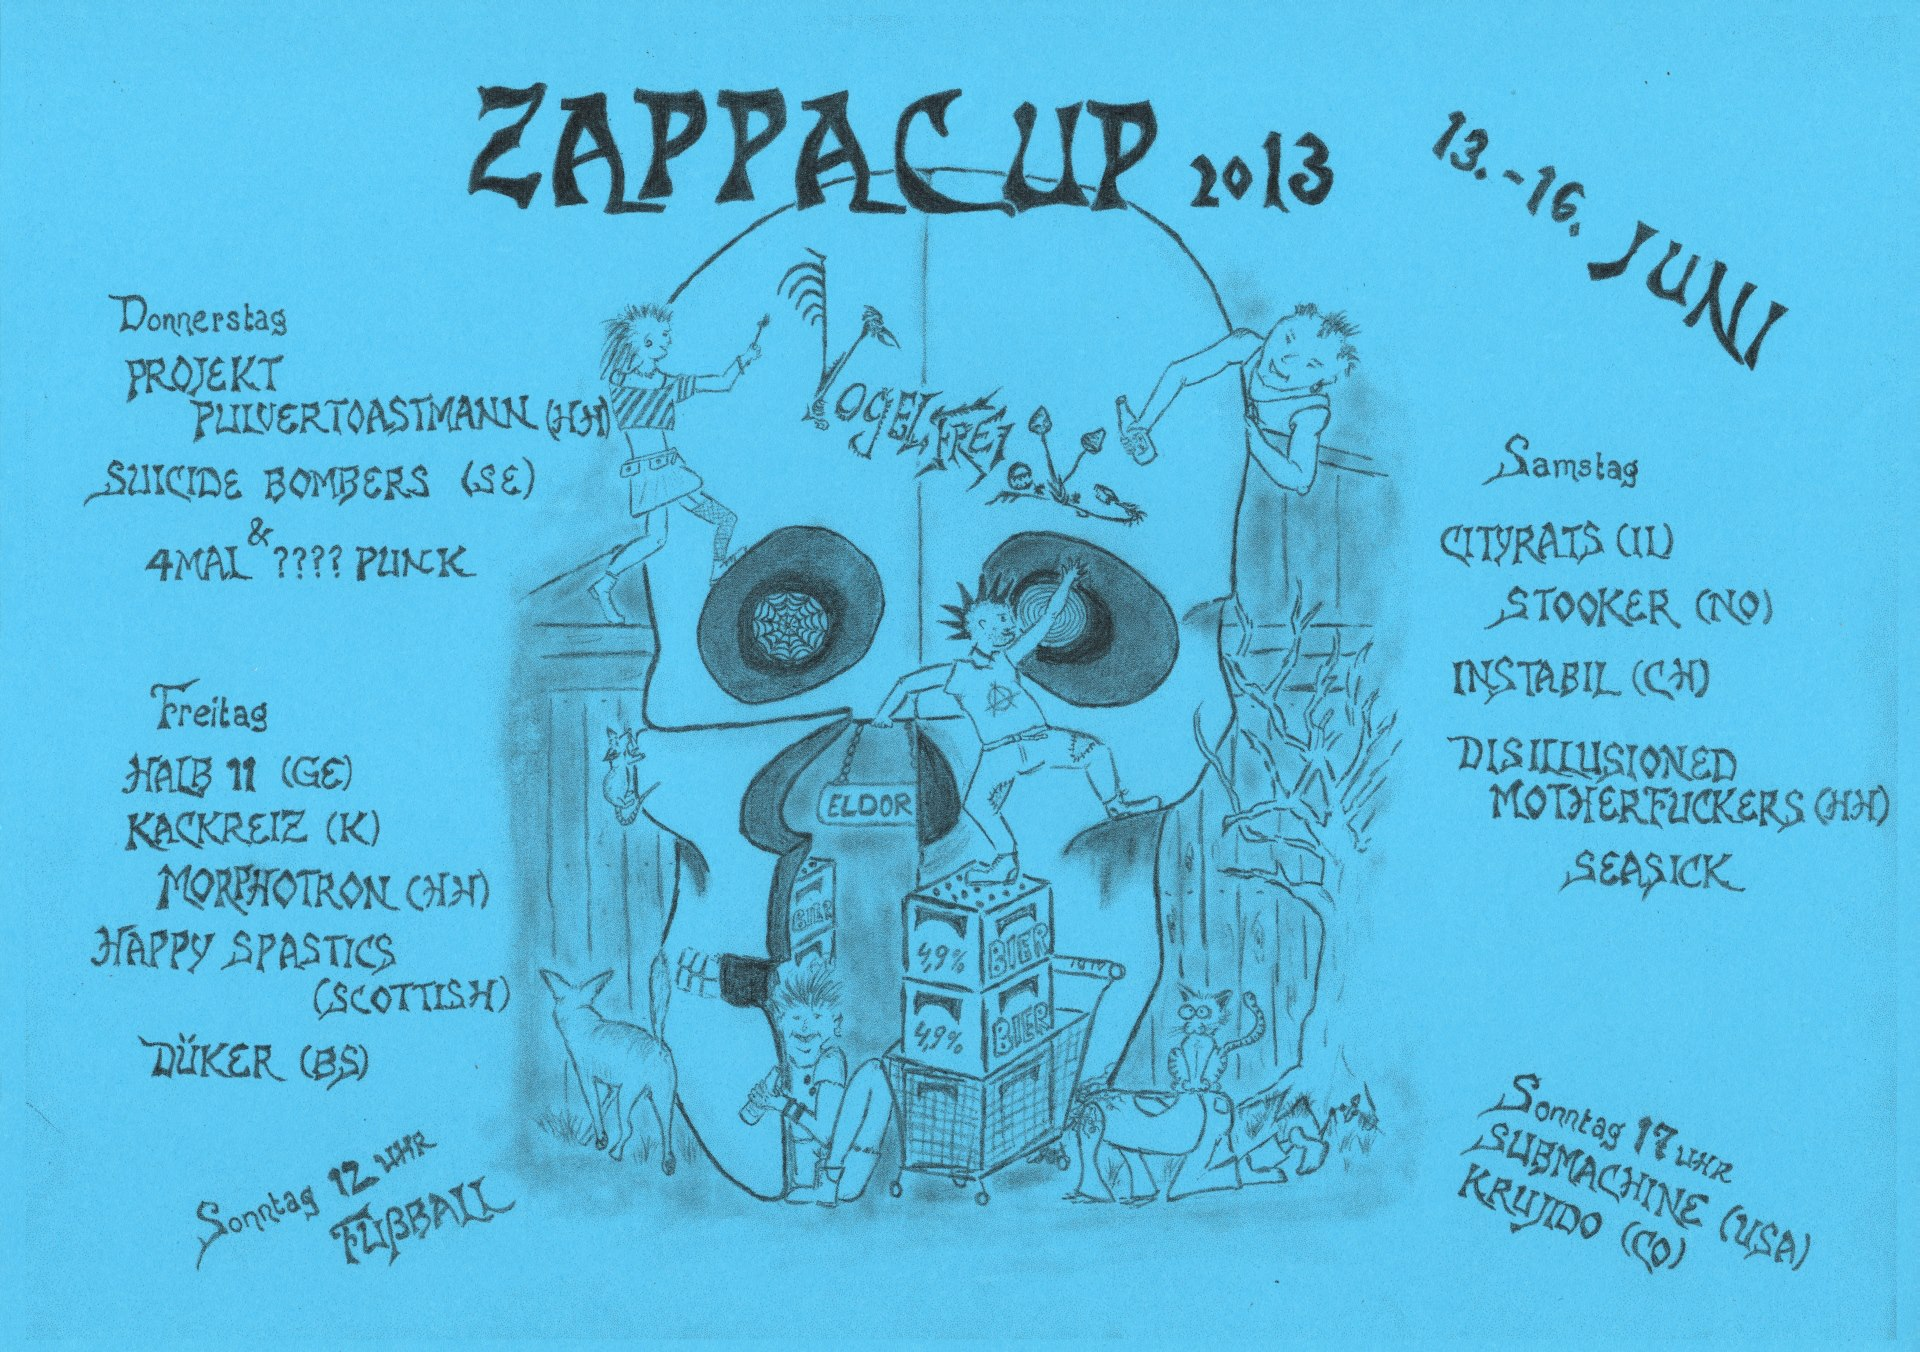 zappacup 2013